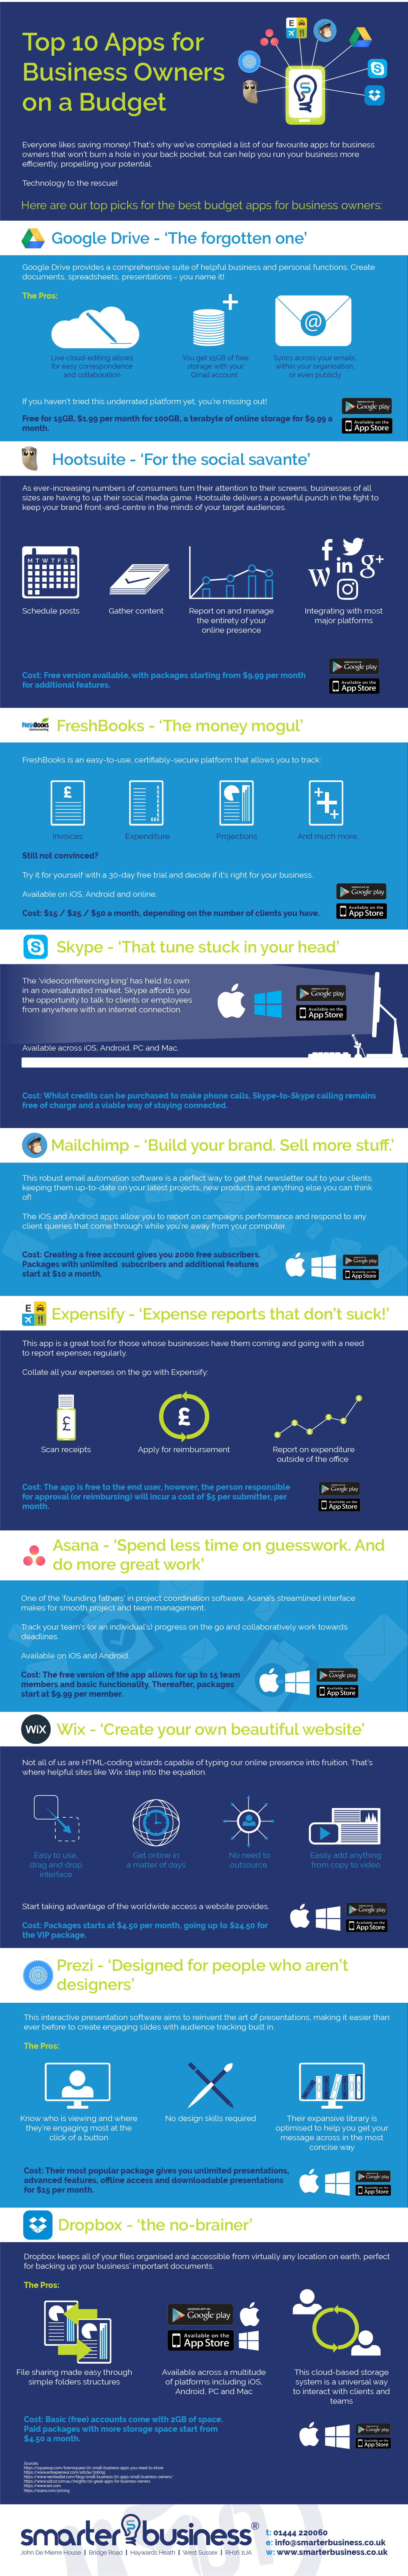 Best apps for business on a budget